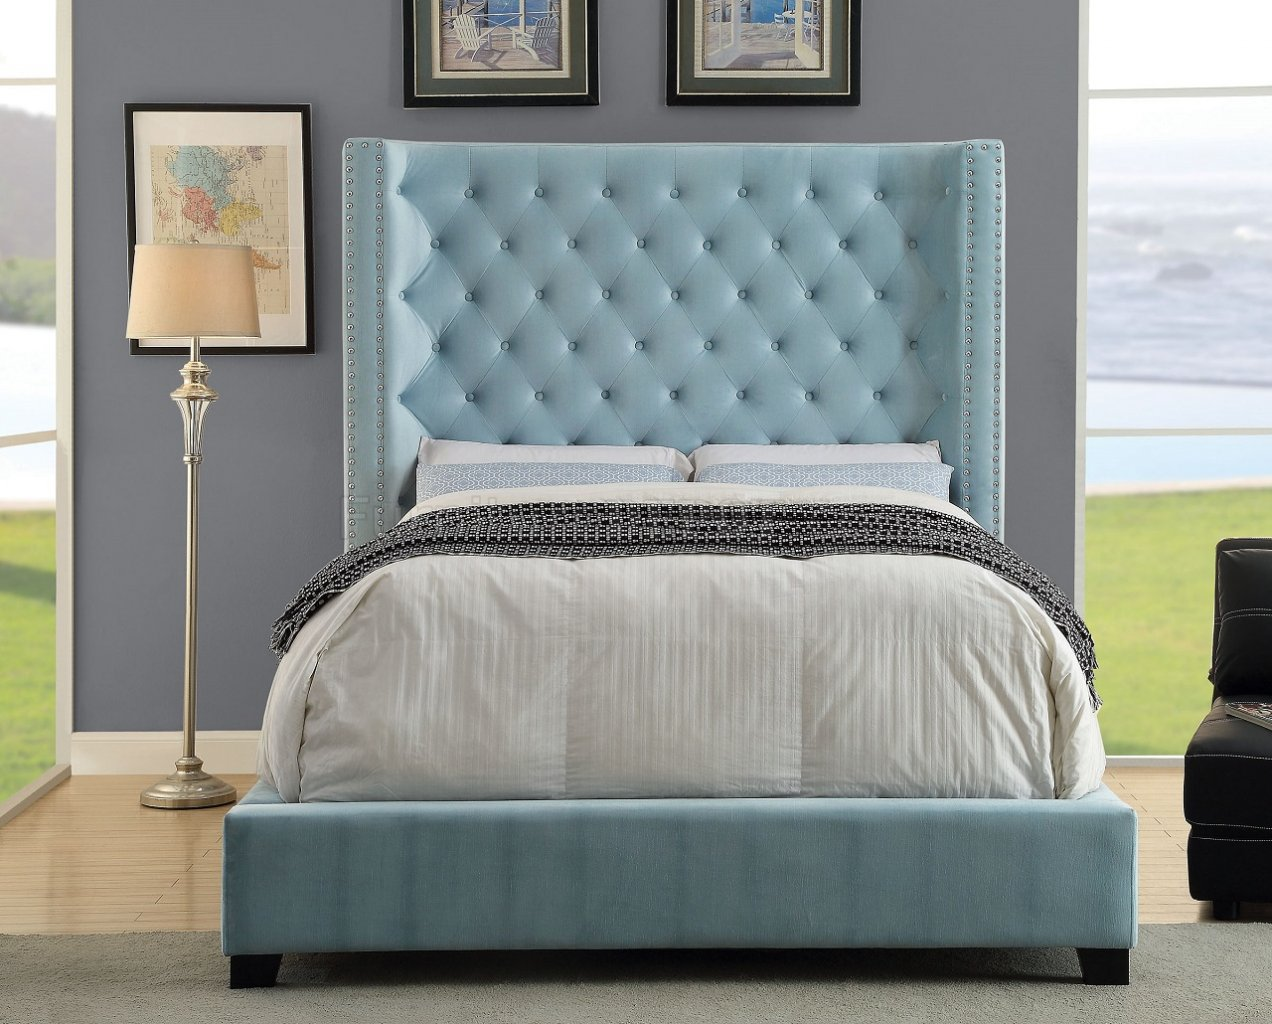 Mirabelle CM7679BL Upholstered Bed In Blue Fabric